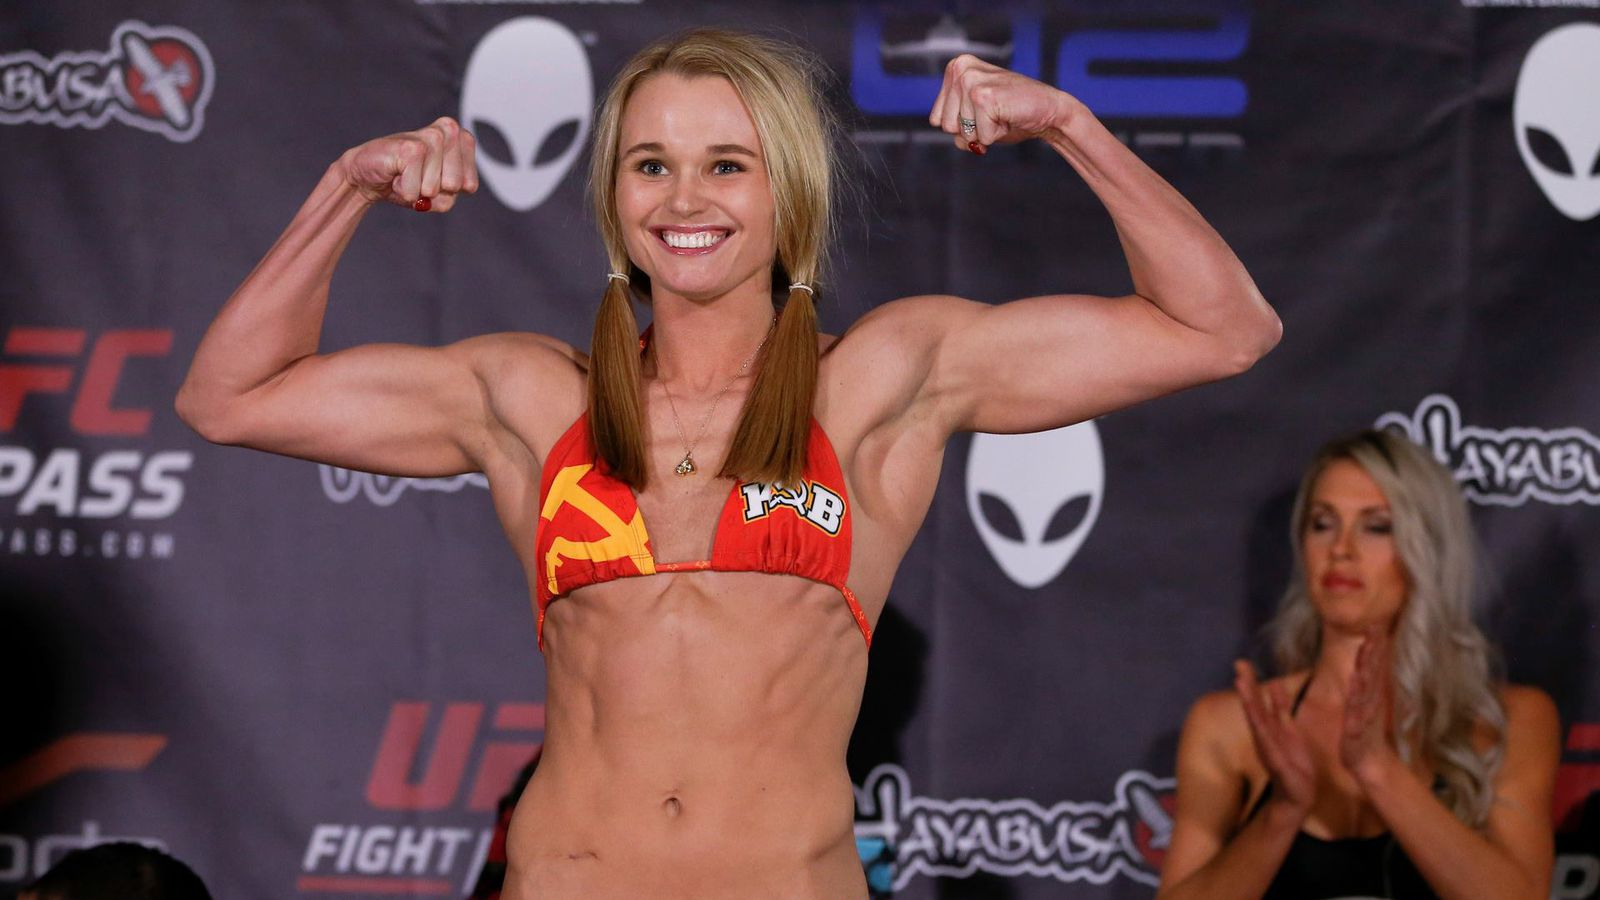 invicta 39 s andrea lee tests positive for diuretics suspended by nevada athletic commission mma. Black Bedroom Furniture Sets. Home Design Ideas